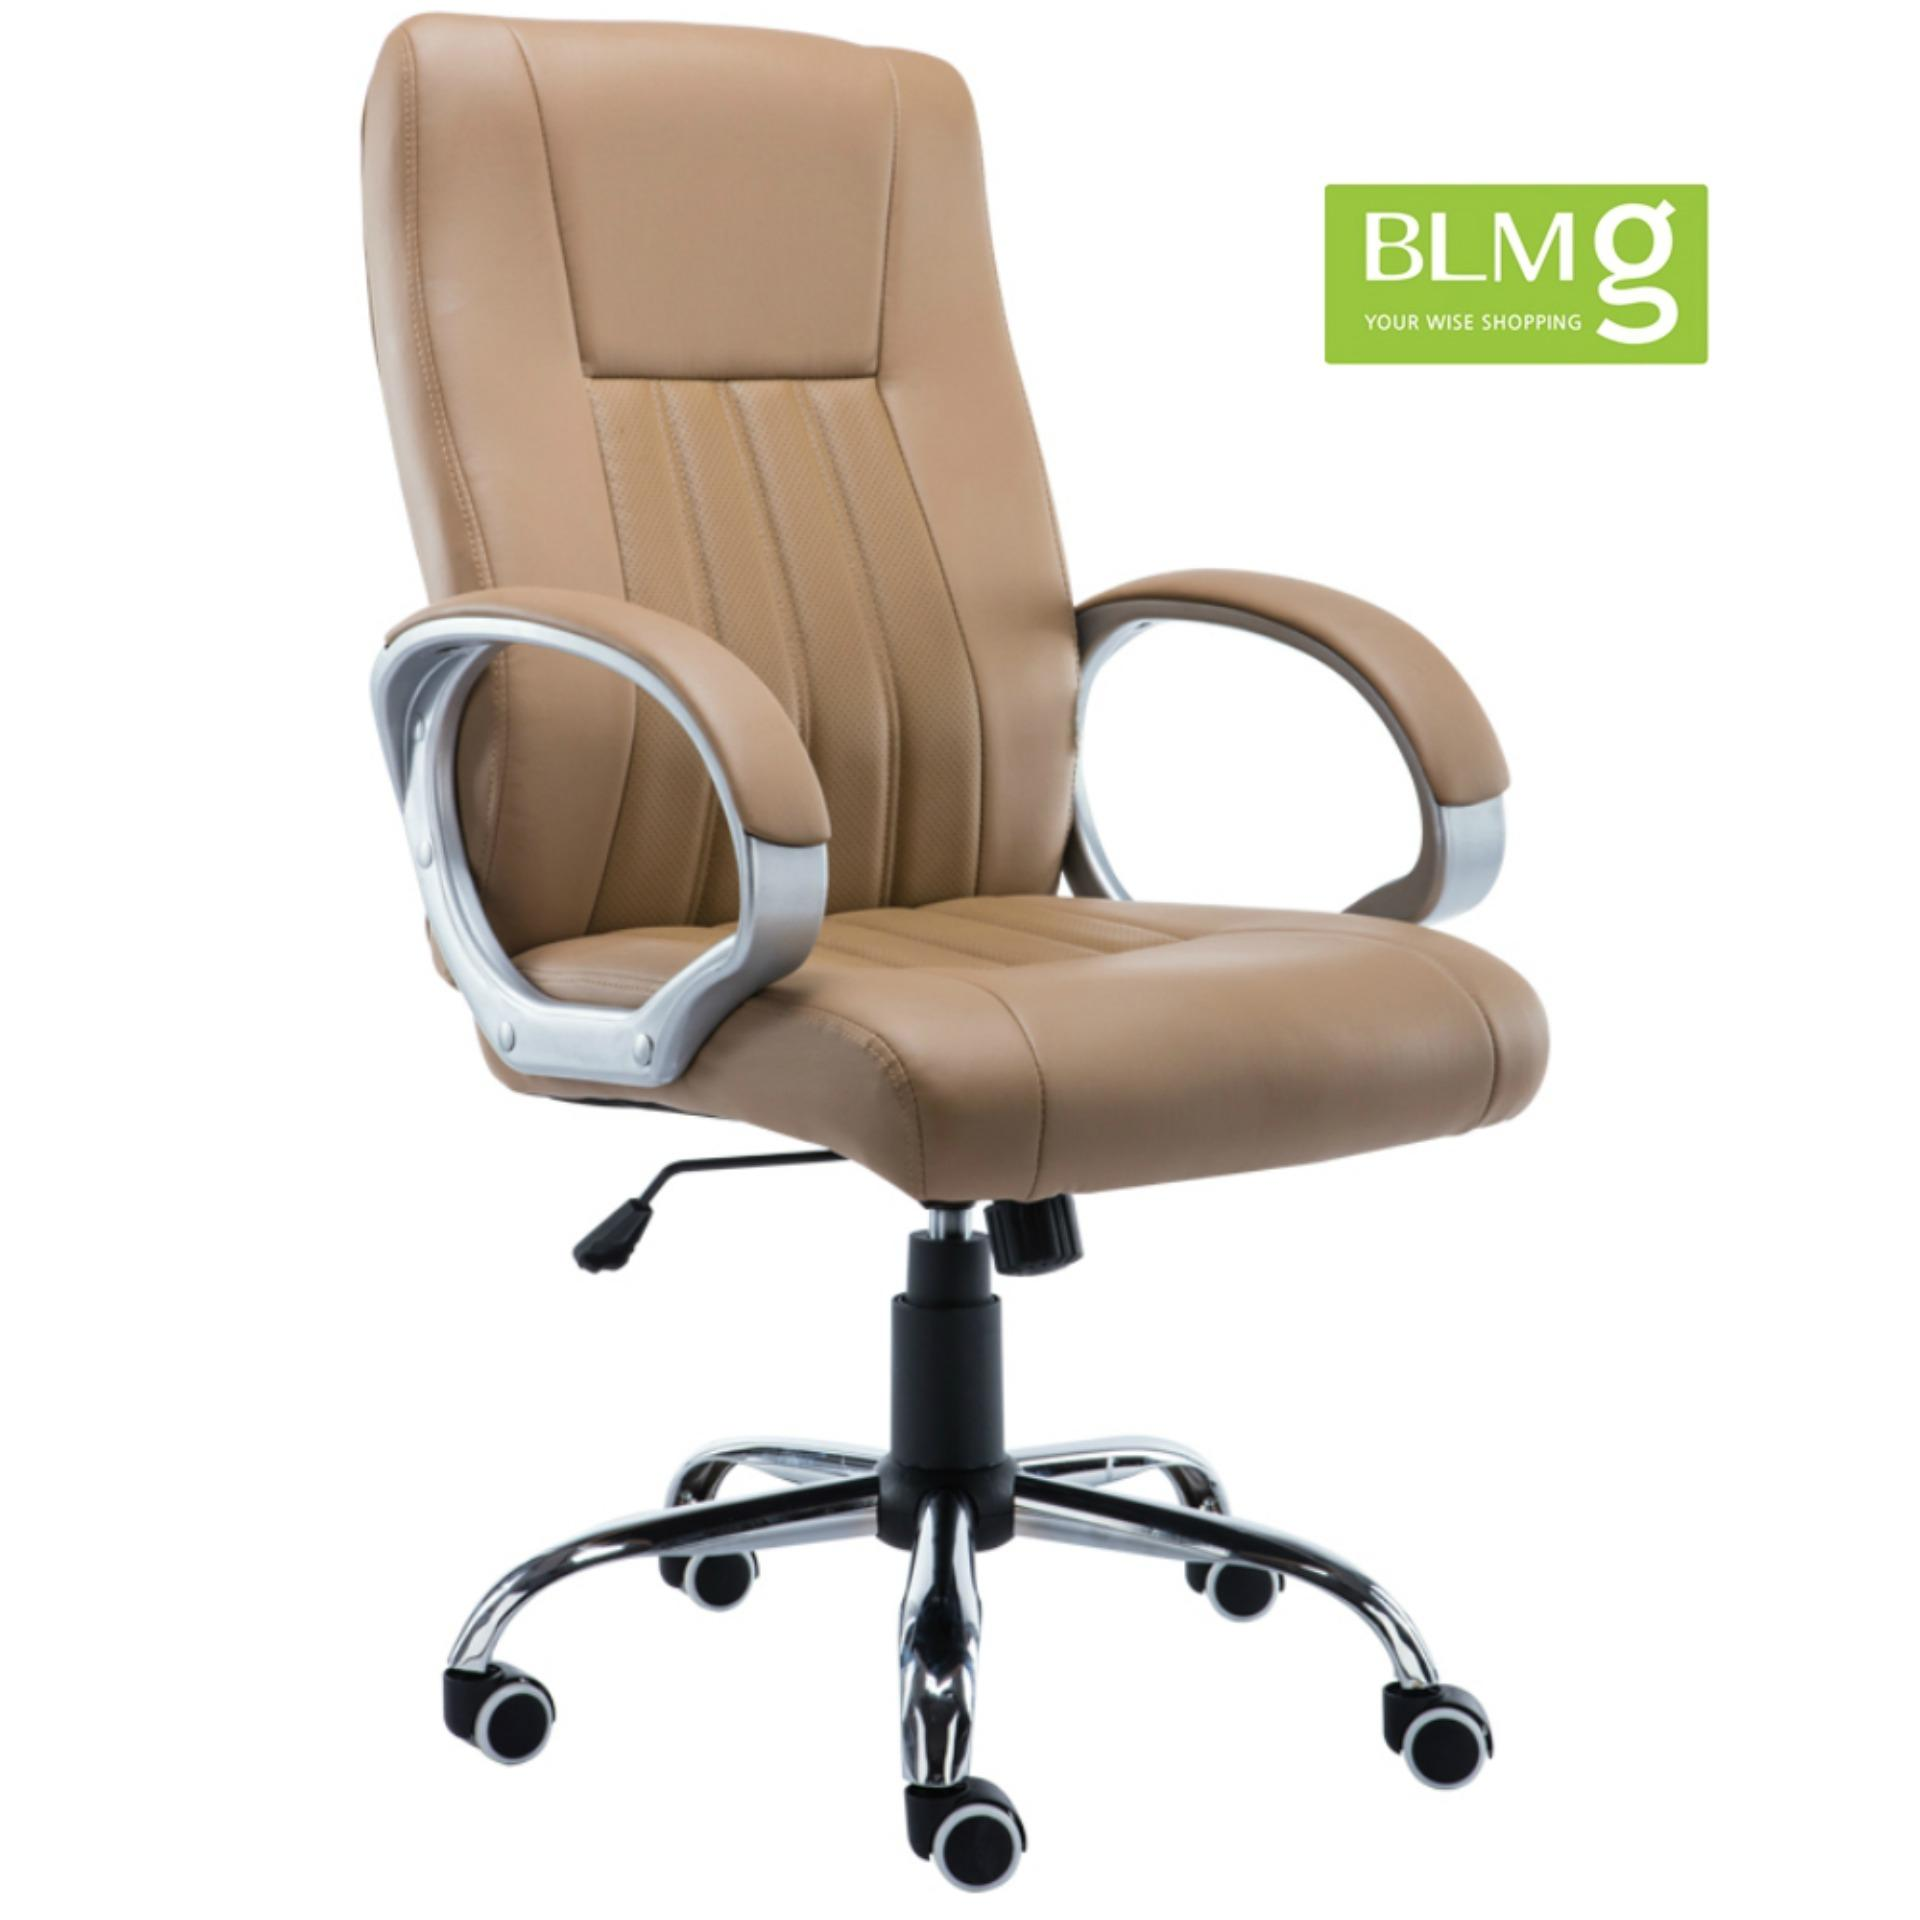 Blmg Office Leatherette Chair B100 Brown